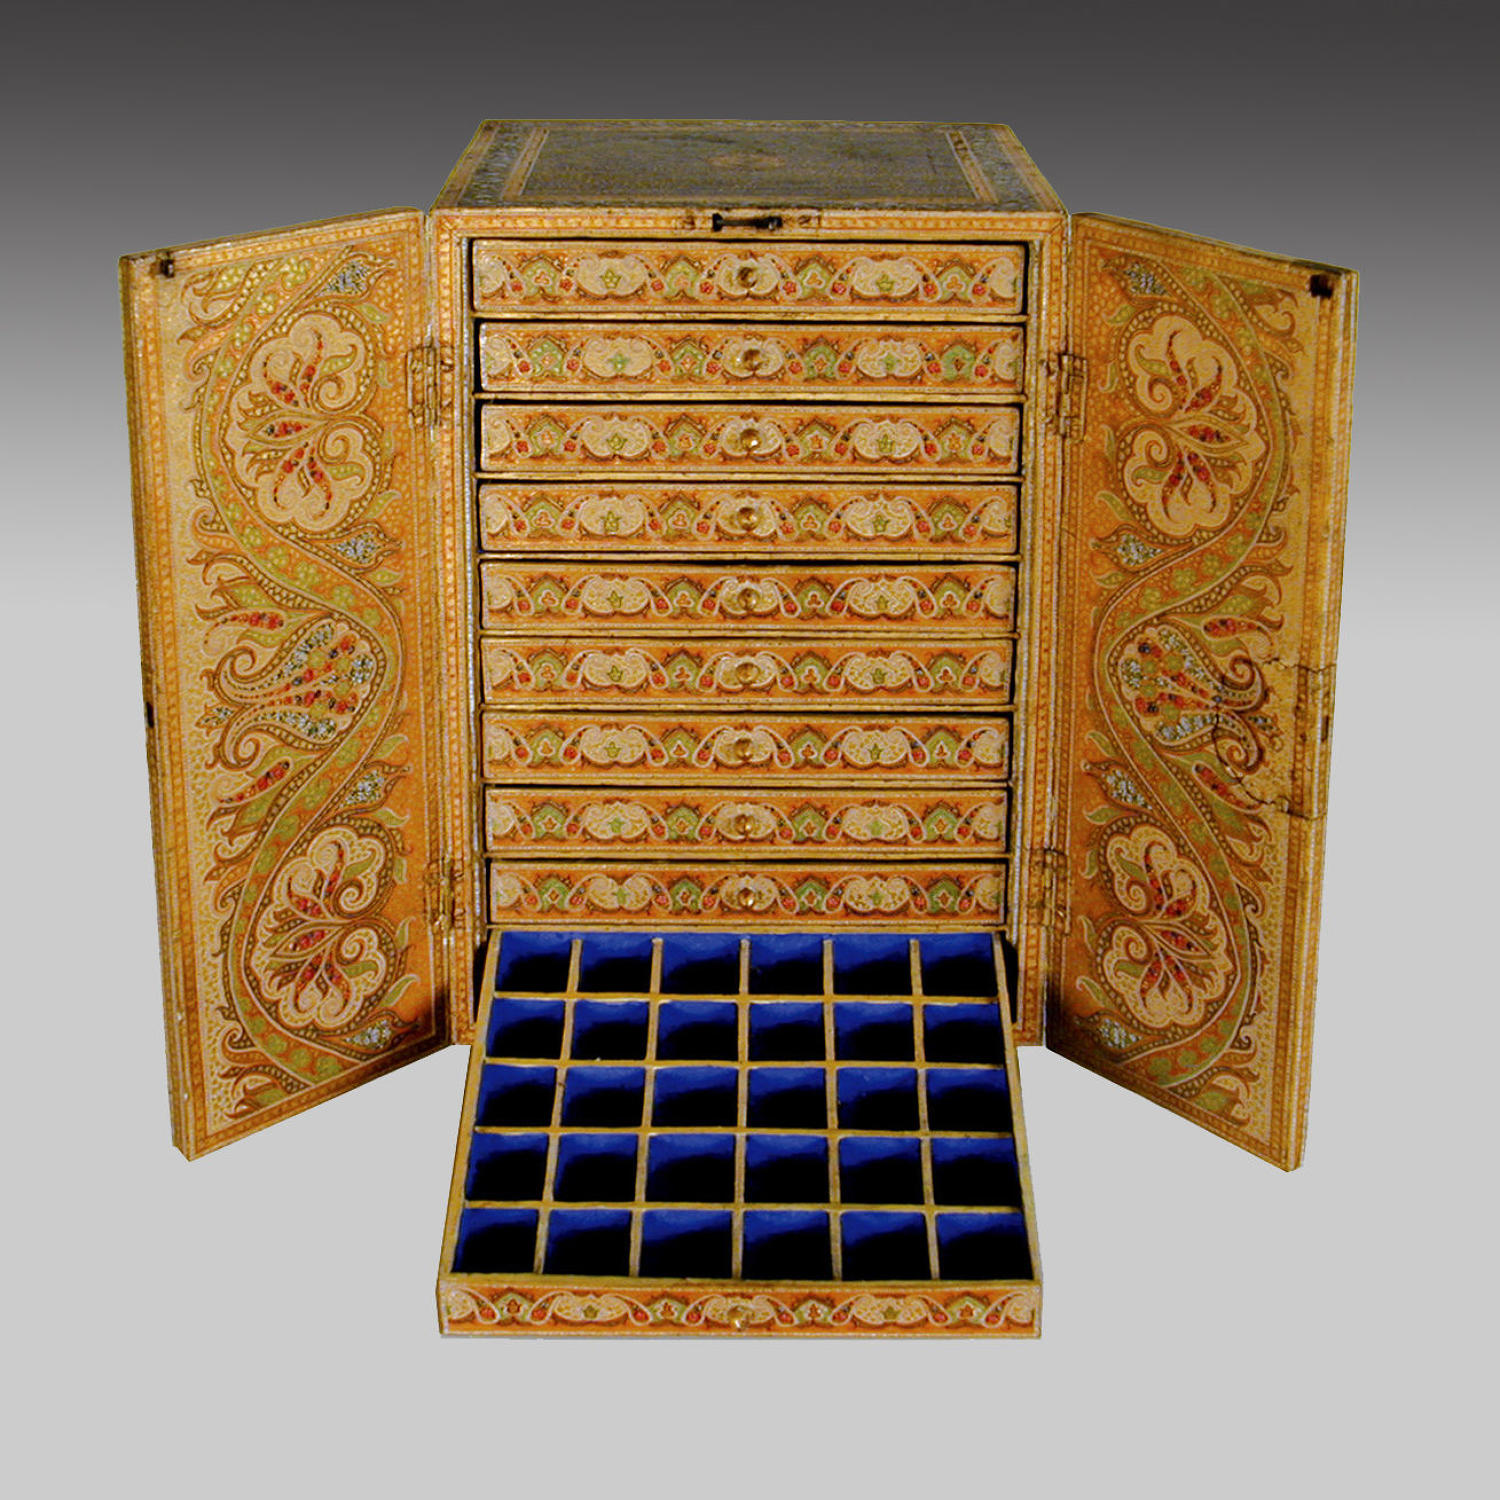 Antique Kashmiri lacquer table cabinet